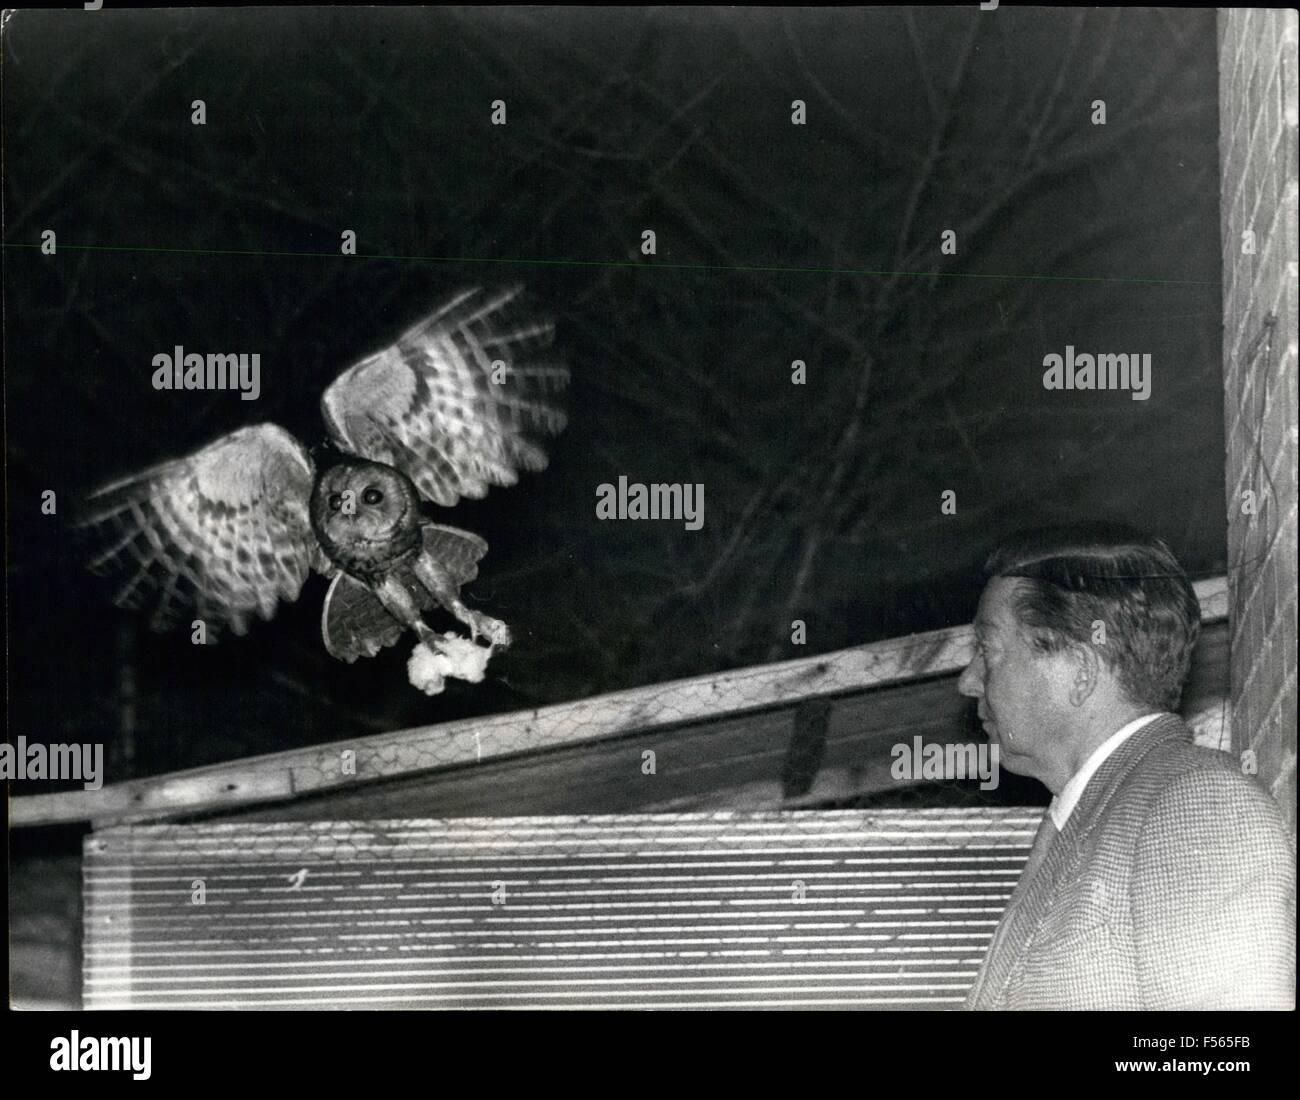 1968 - Caught by the camera - owl and man together  Many